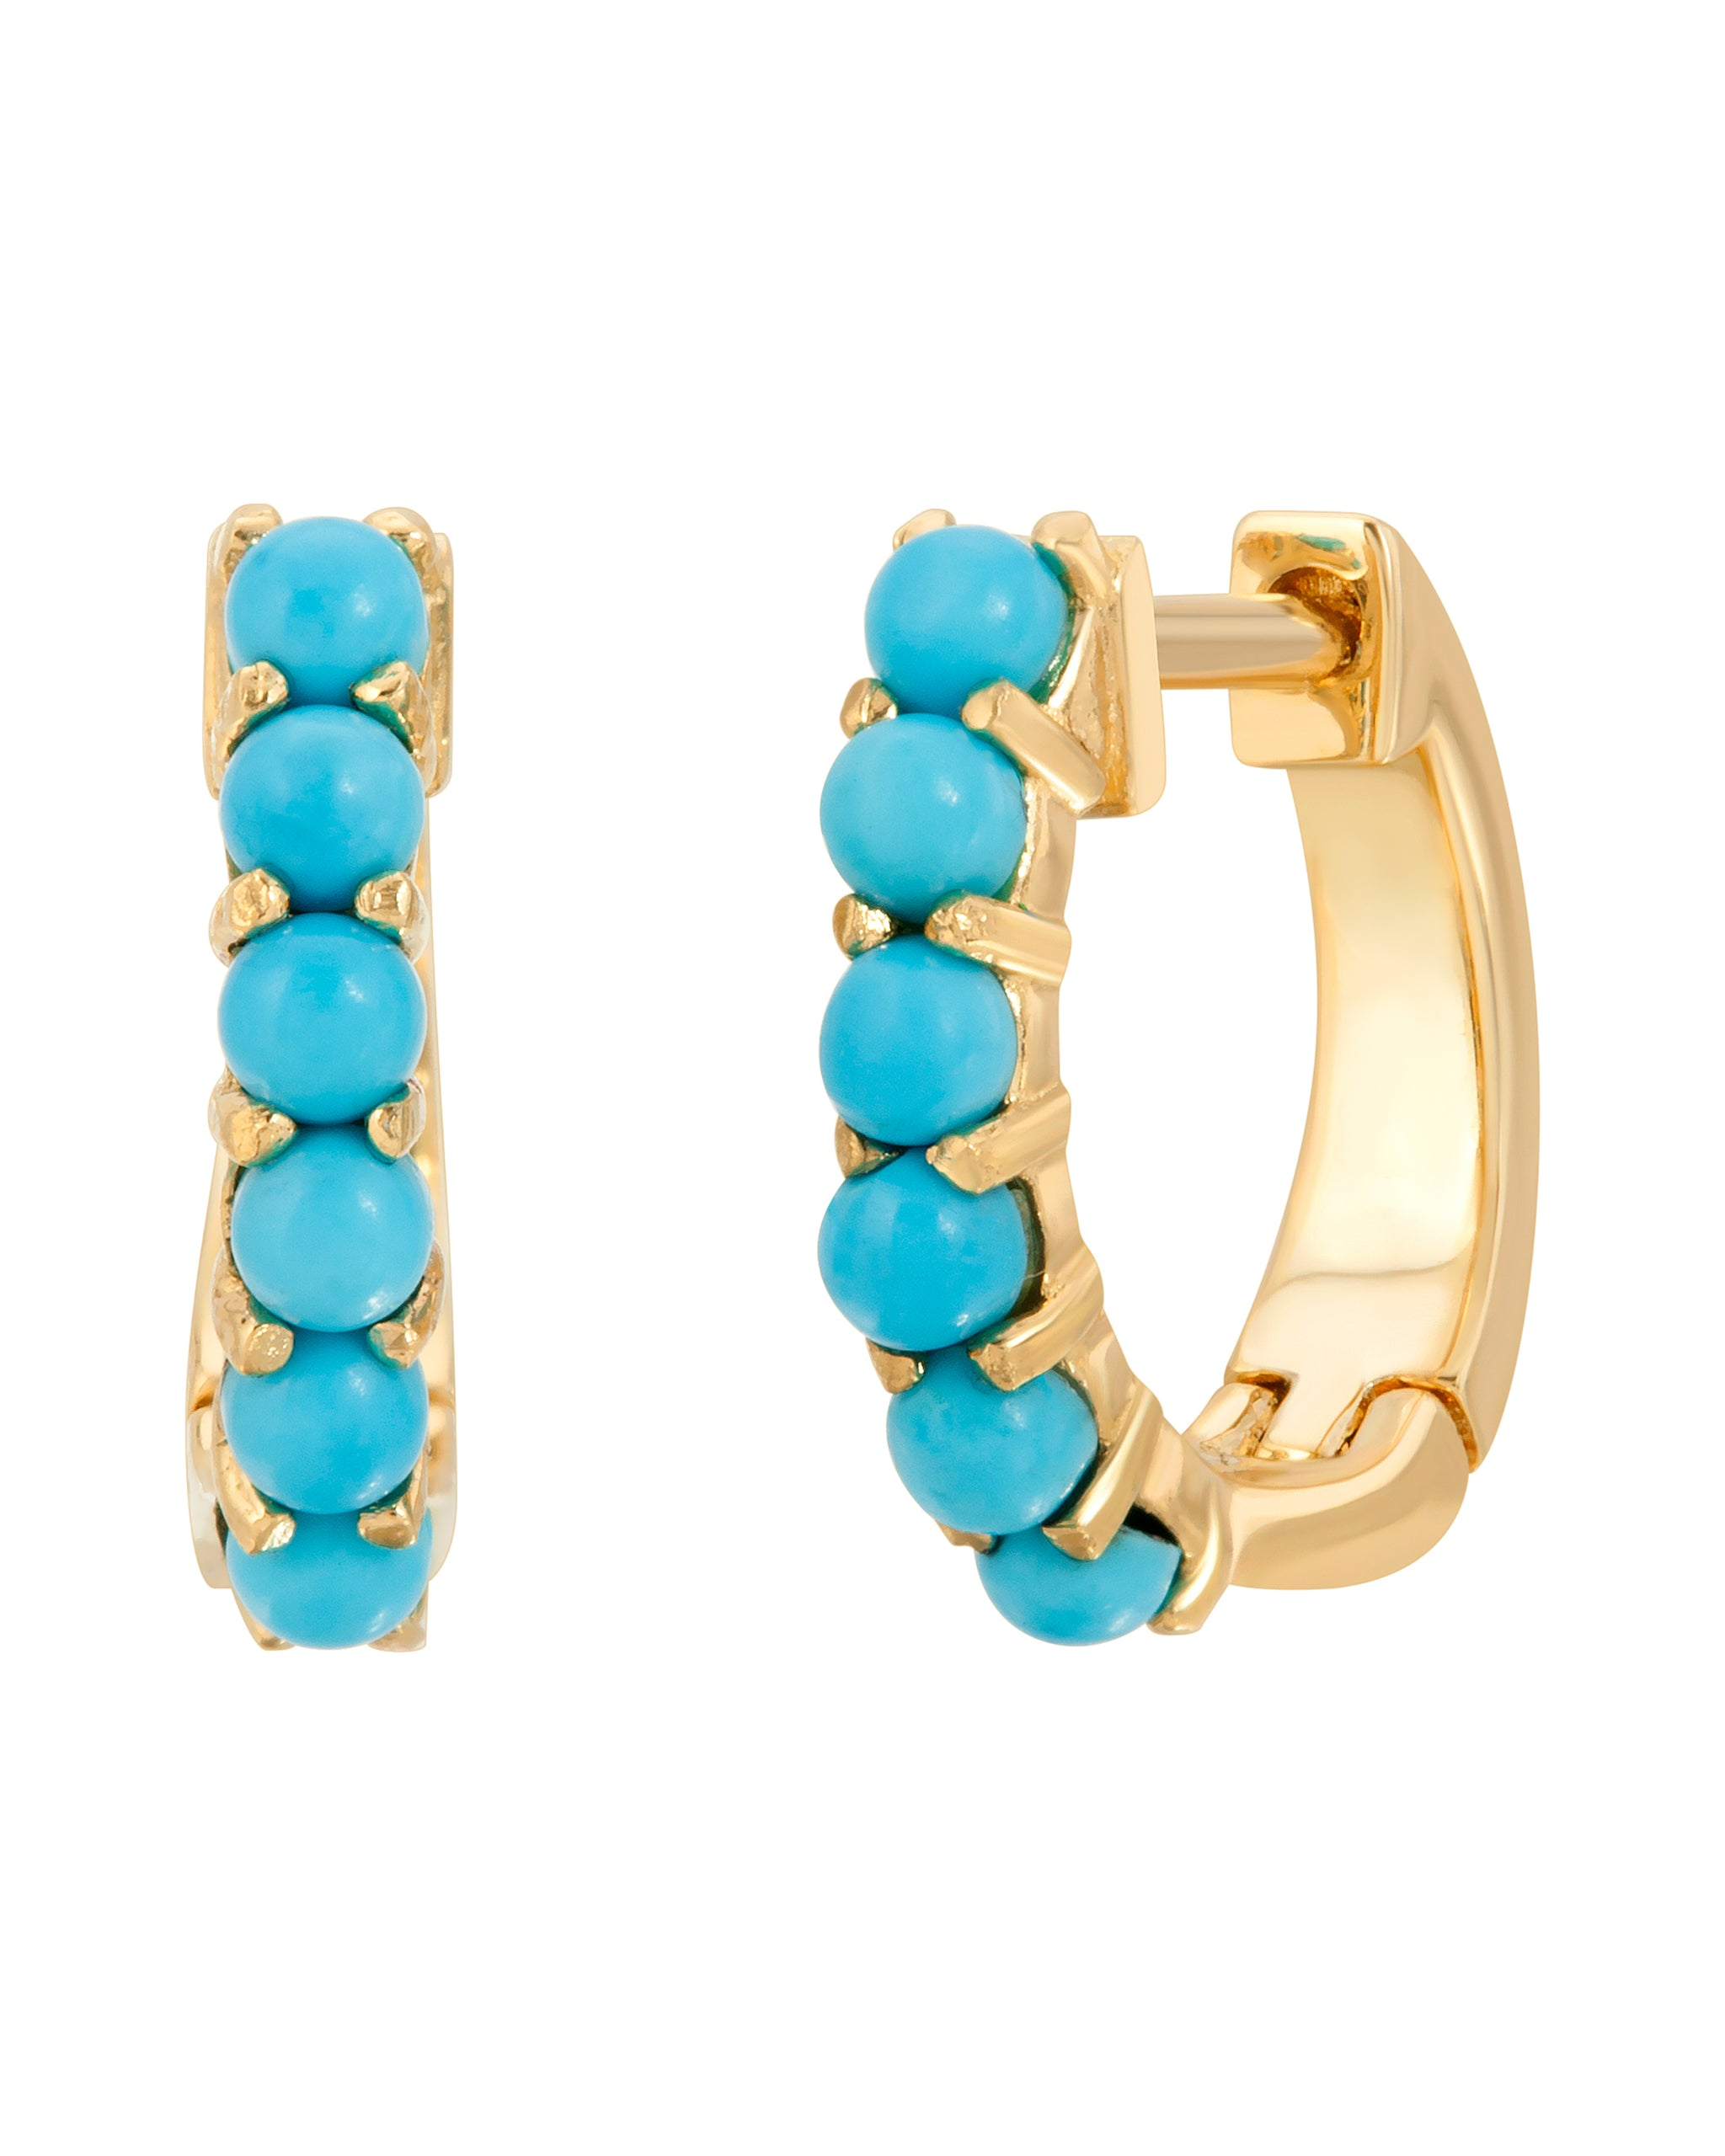 Turquoise and Tobacco 14k Gold Turquoise Huggies